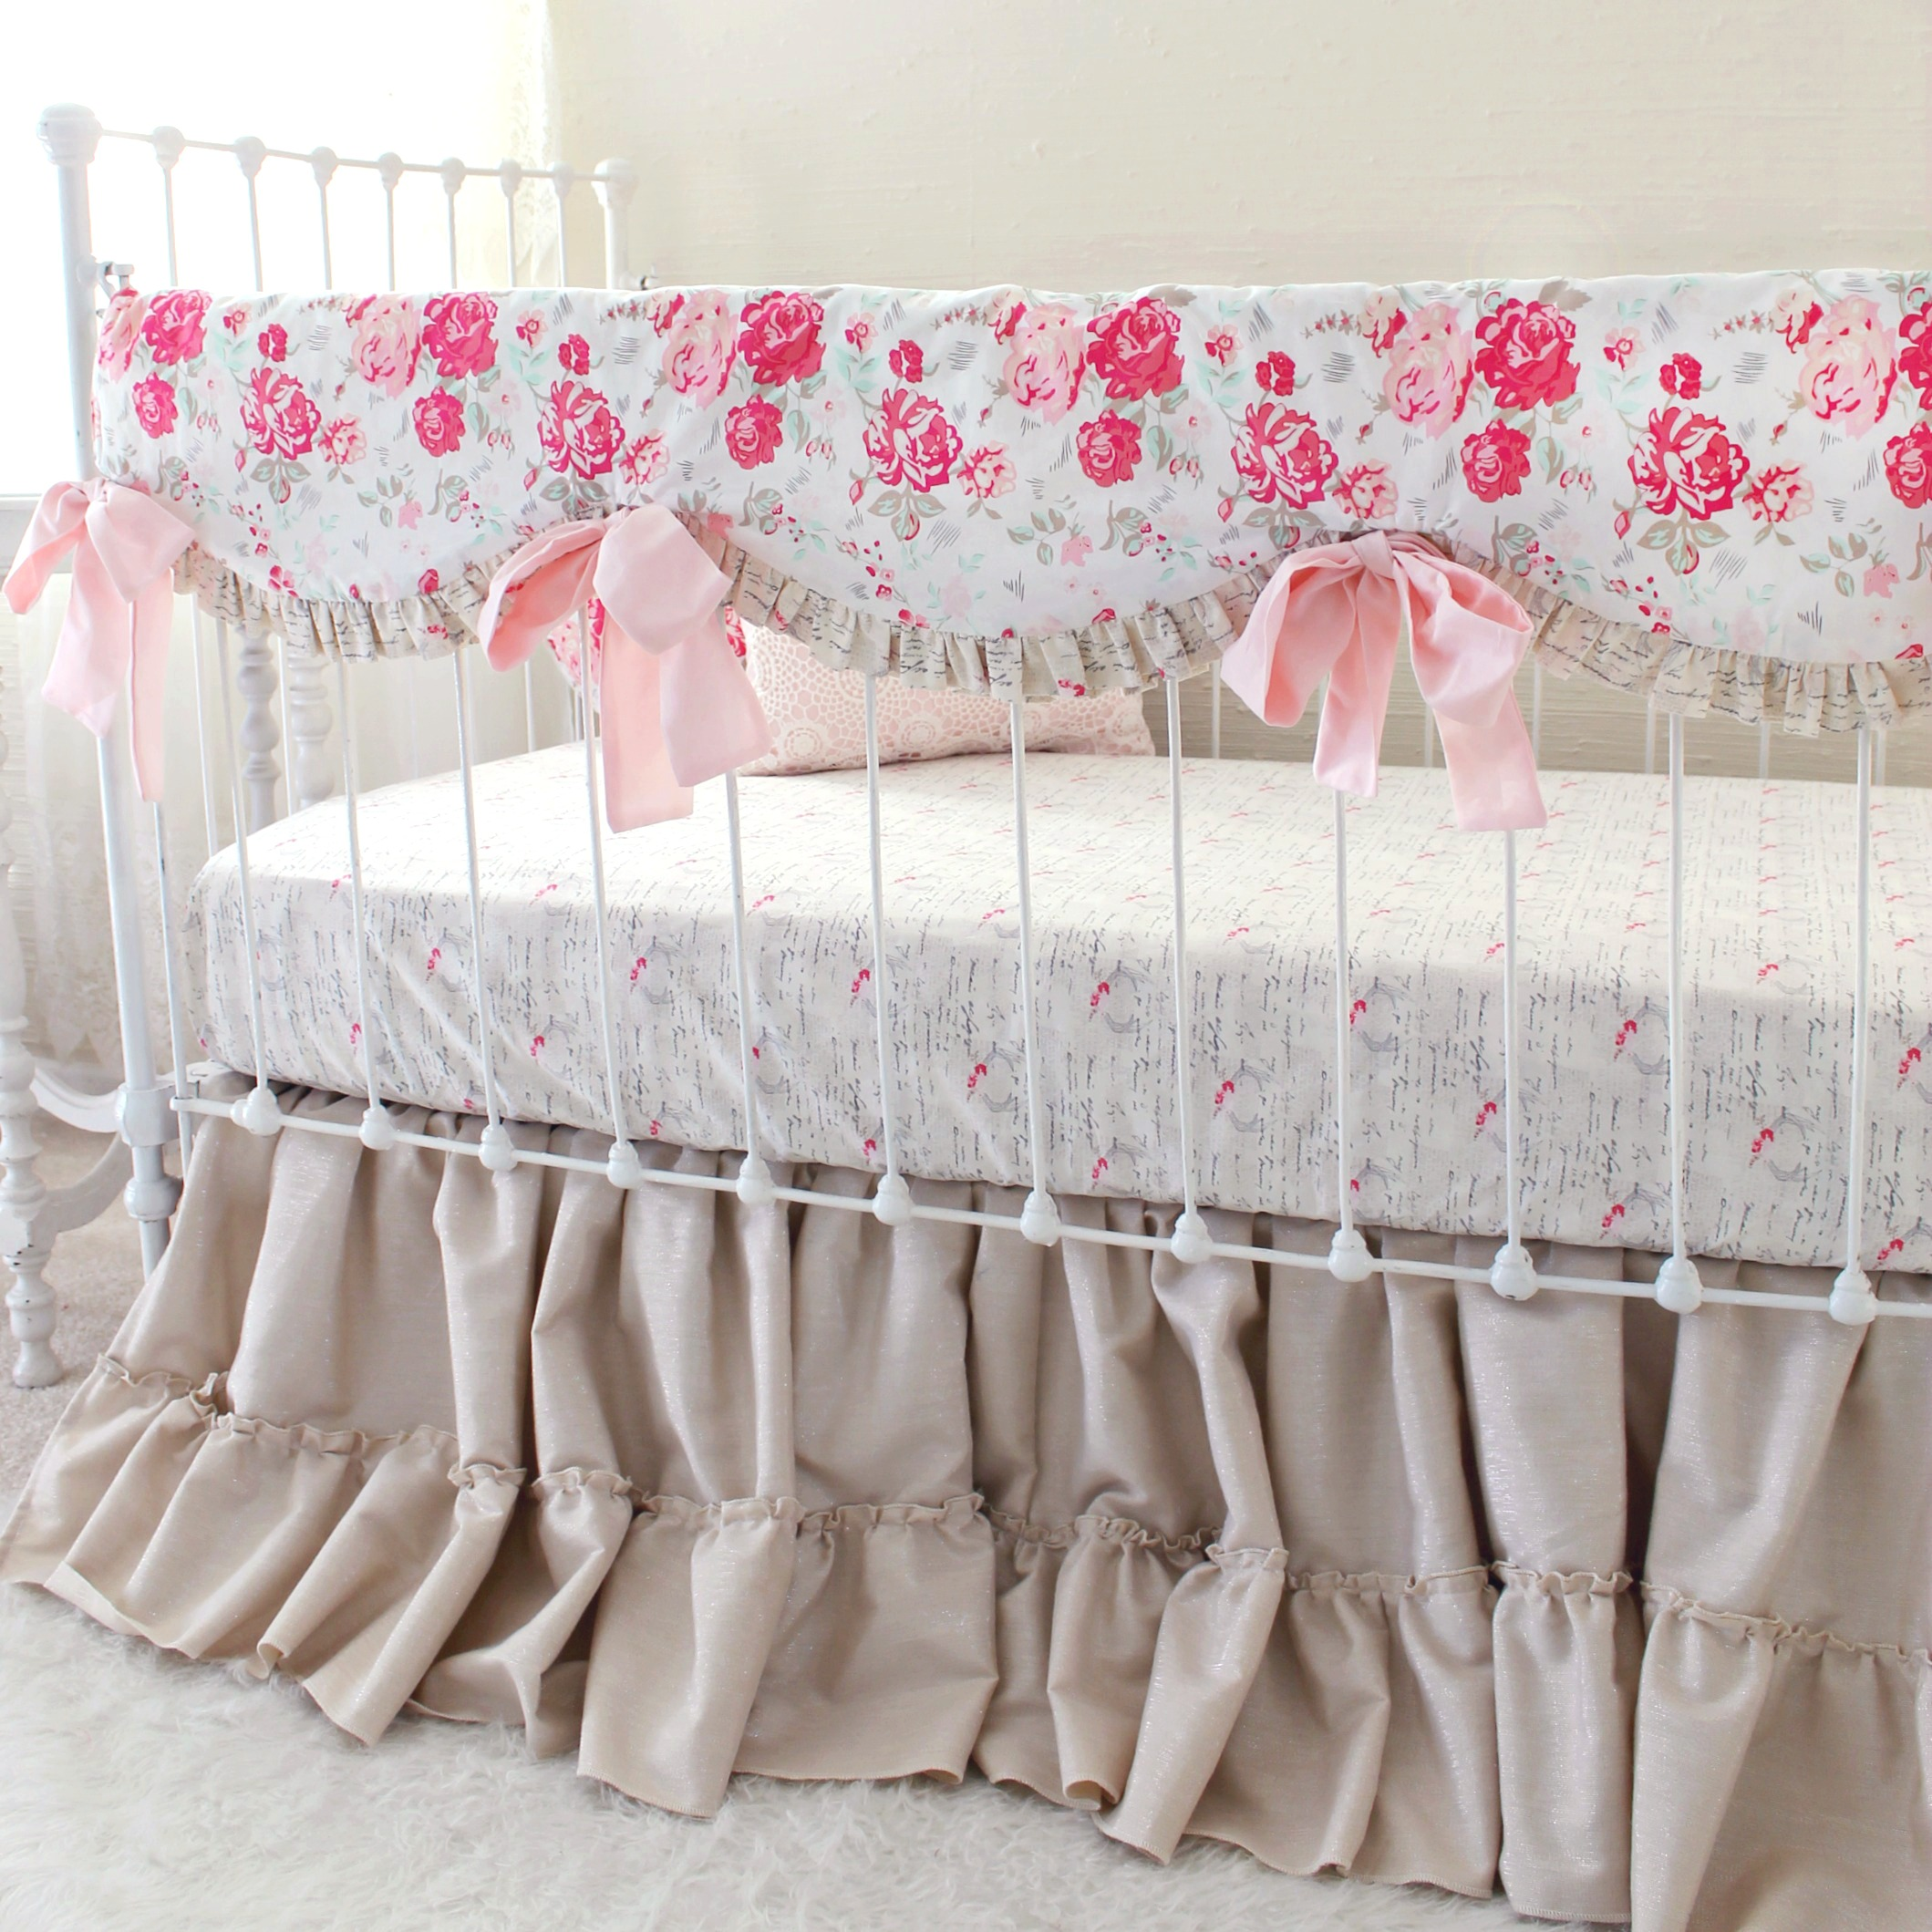 set lavender and bedding cribs carousel shabby large crib designs gray pink traditions floral baby